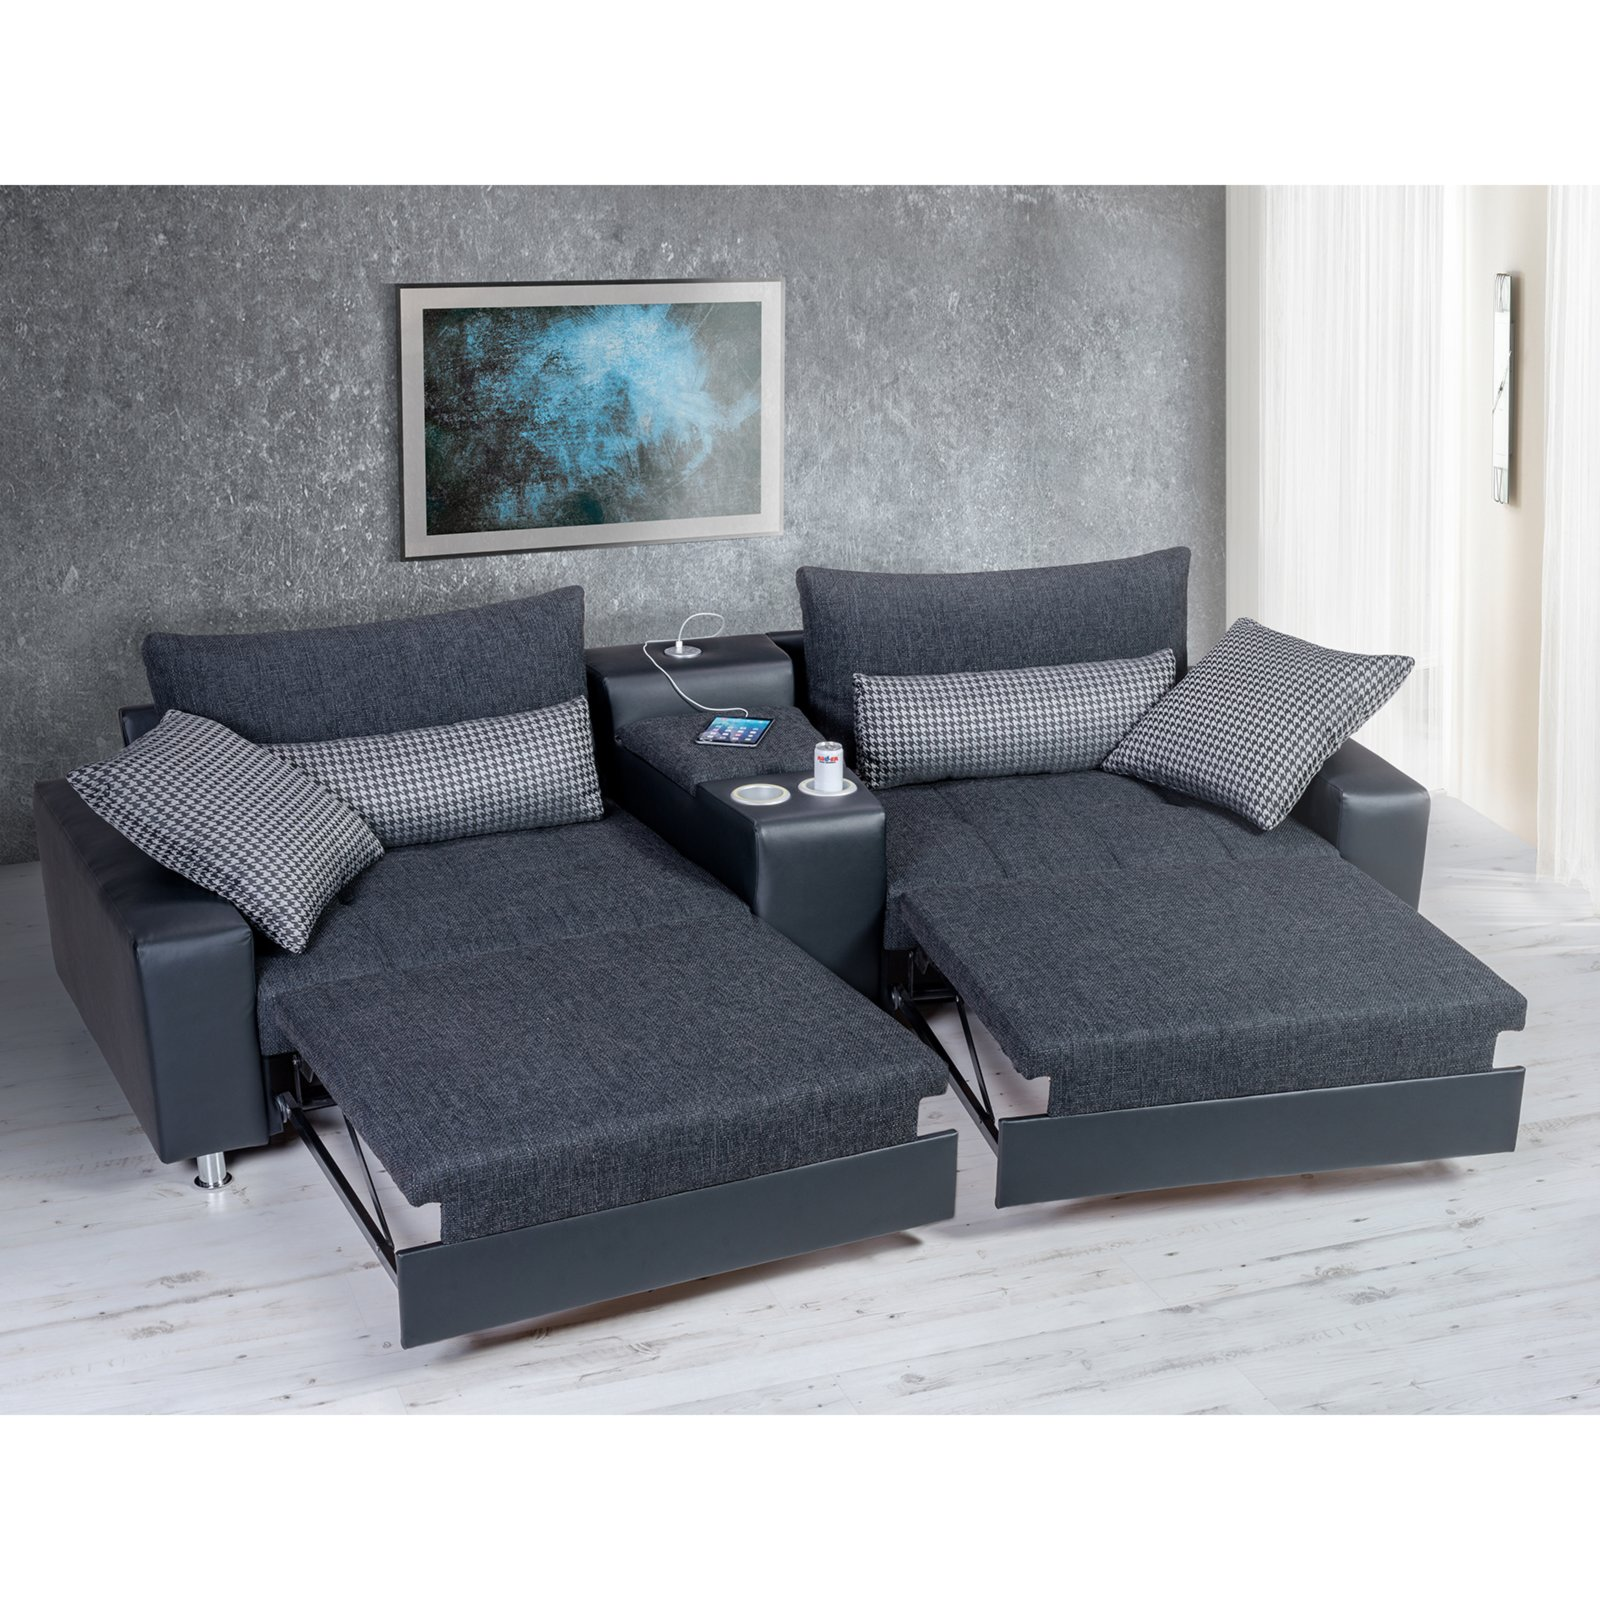 roller 2 sitzer heimkino sofa schwarz mit funktionen. Black Bedroom Furniture Sets. Home Design Ideas